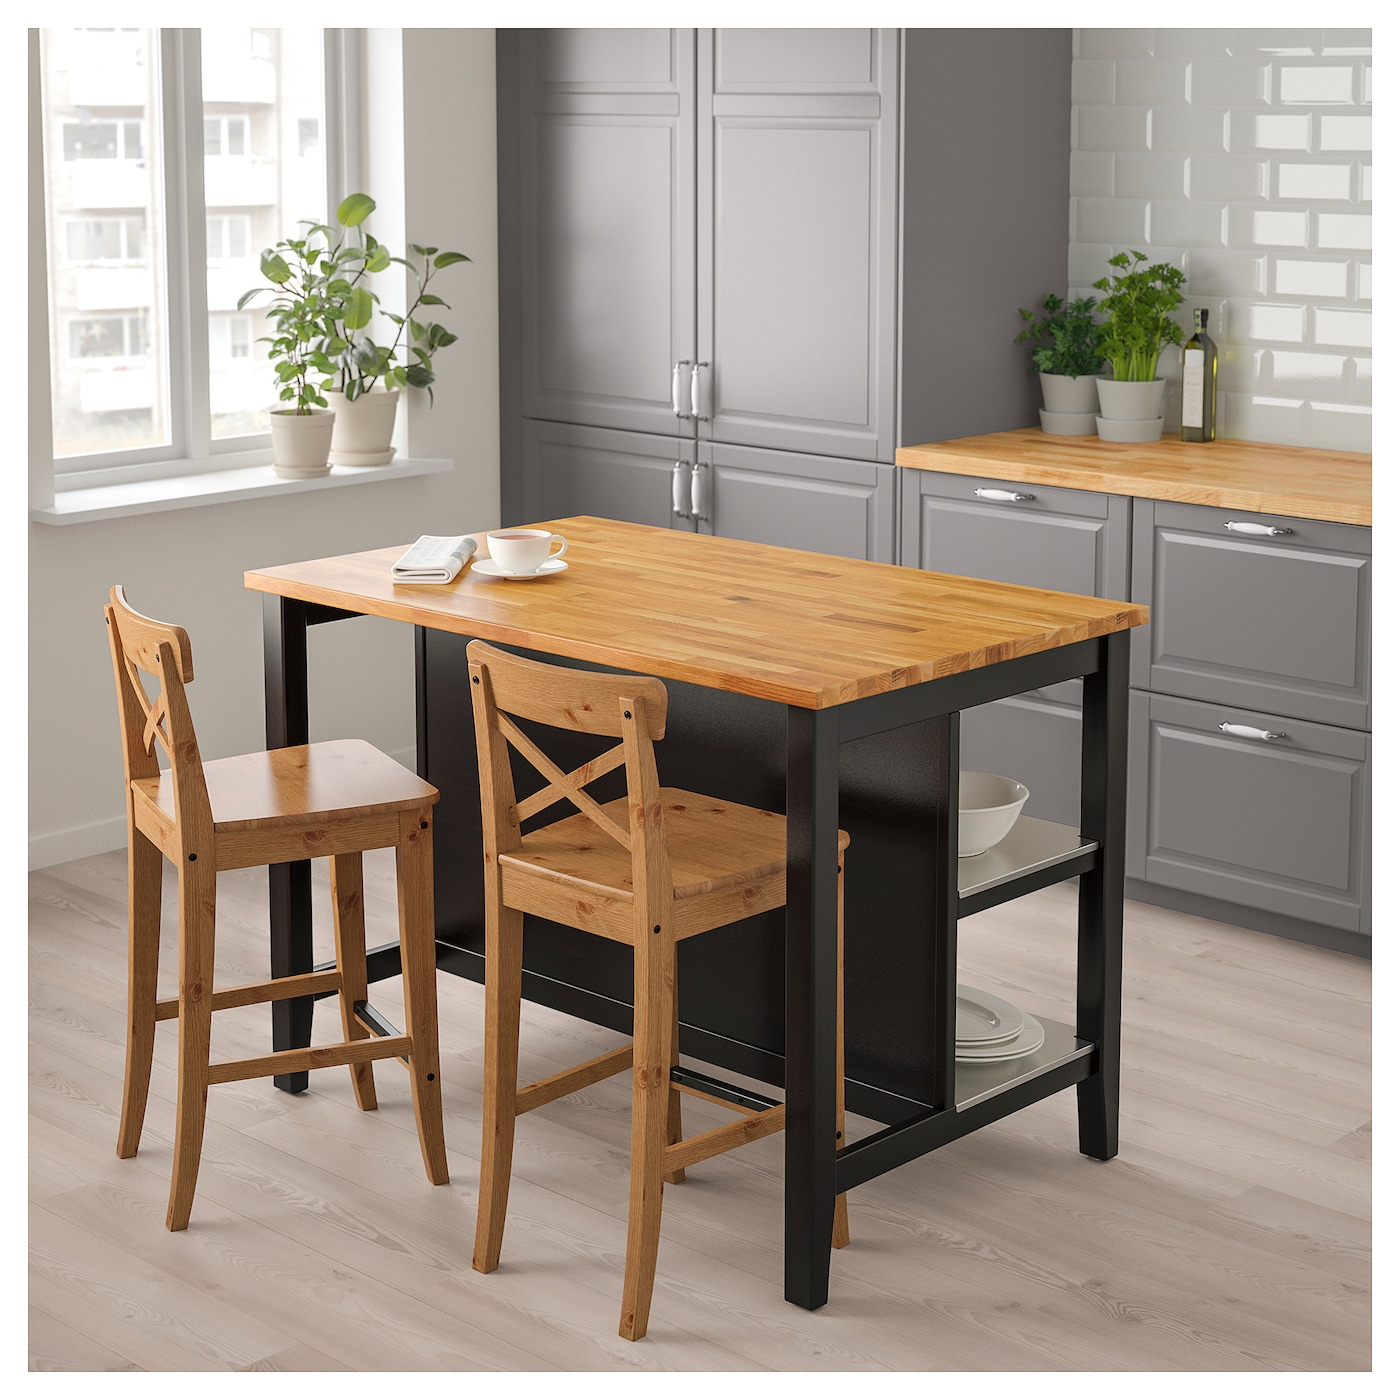 island table for kitchen ikea stenstorp kitchen island black brown oak 126x79 cm ikea 7602